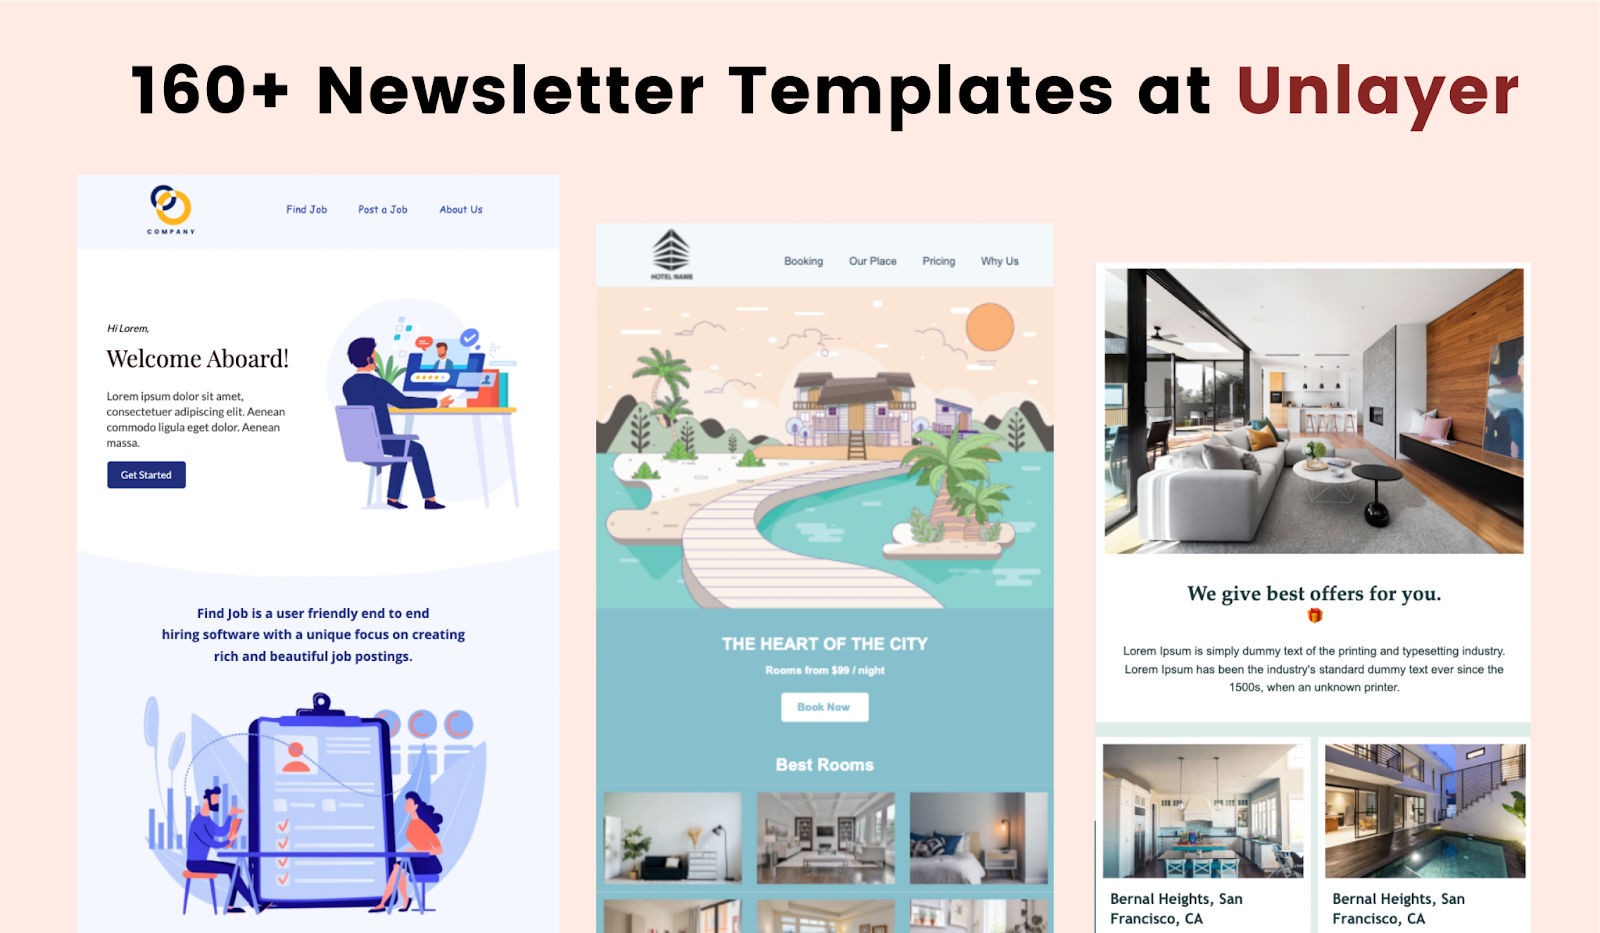 More than 160 newsletter templates at Unlayer